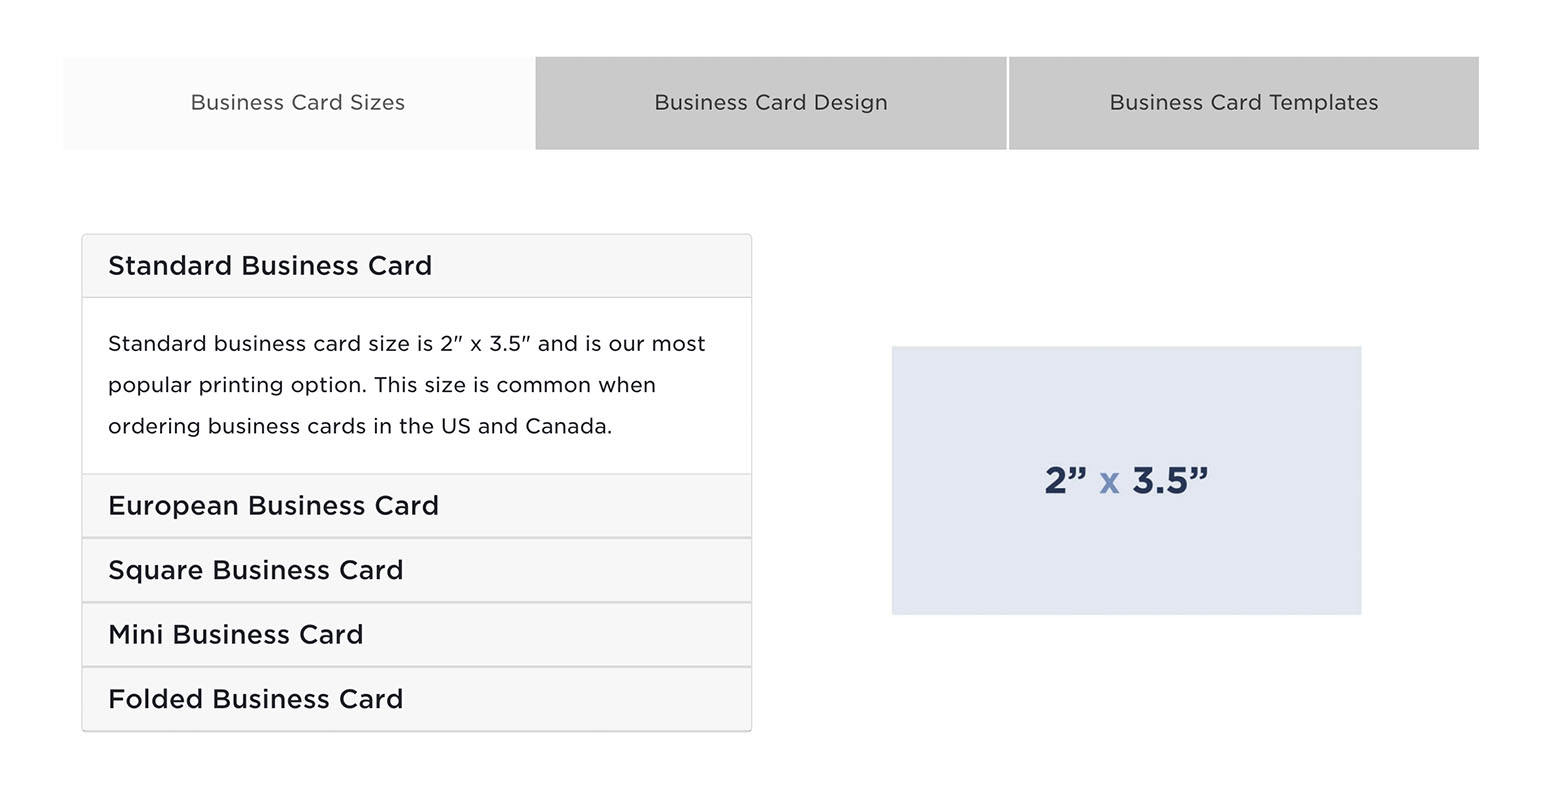 We've added teh following tabs to help you shop for the right custom business cards. The tabs feature sizes, graphic design services and free business card templates.